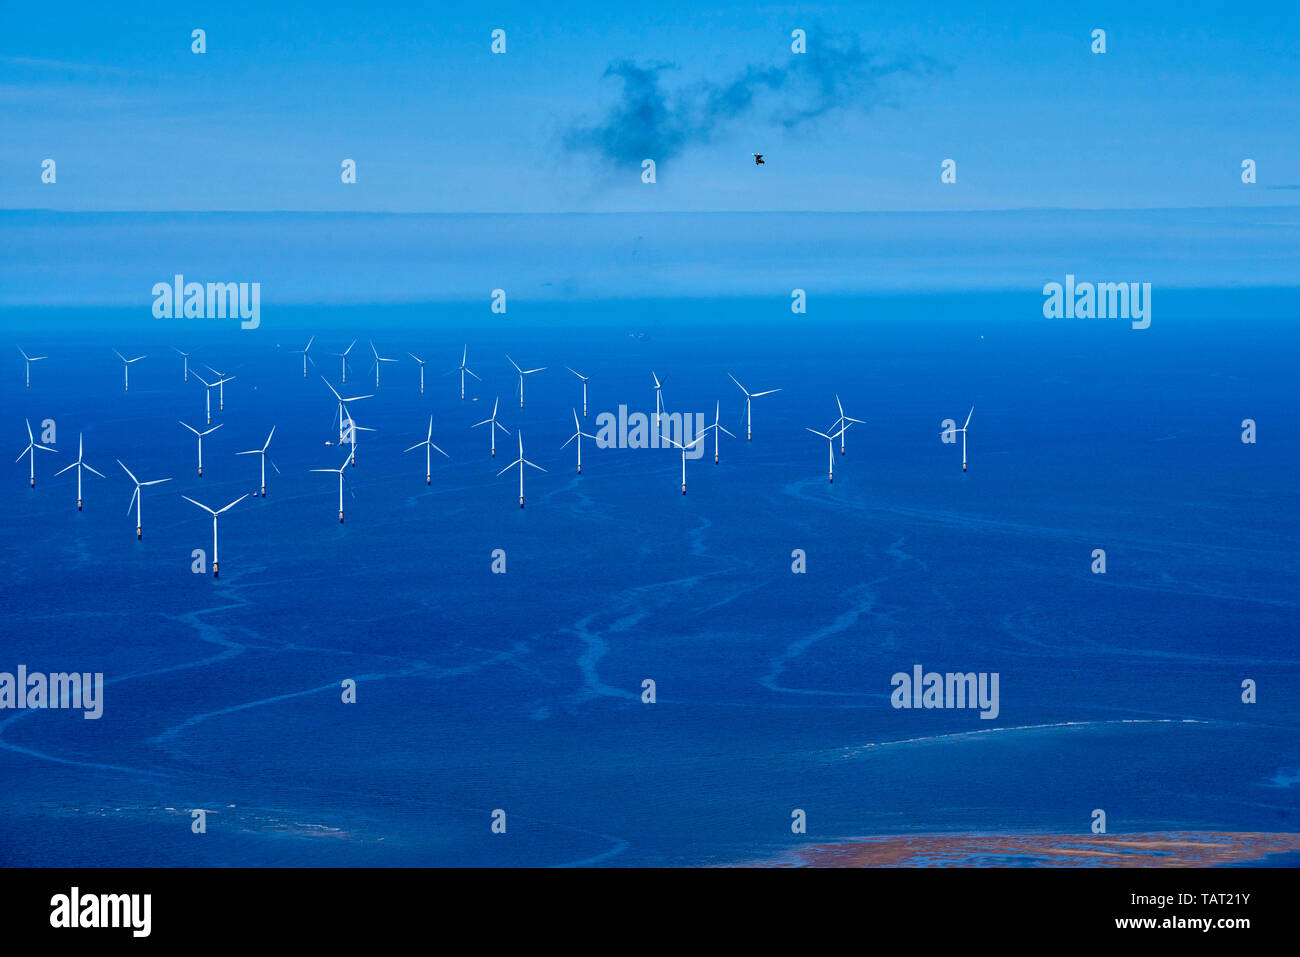 Off shore Windfarm off the mouth of the river Mersey, North West England, UK, with a Microlite flying above - Stock Image